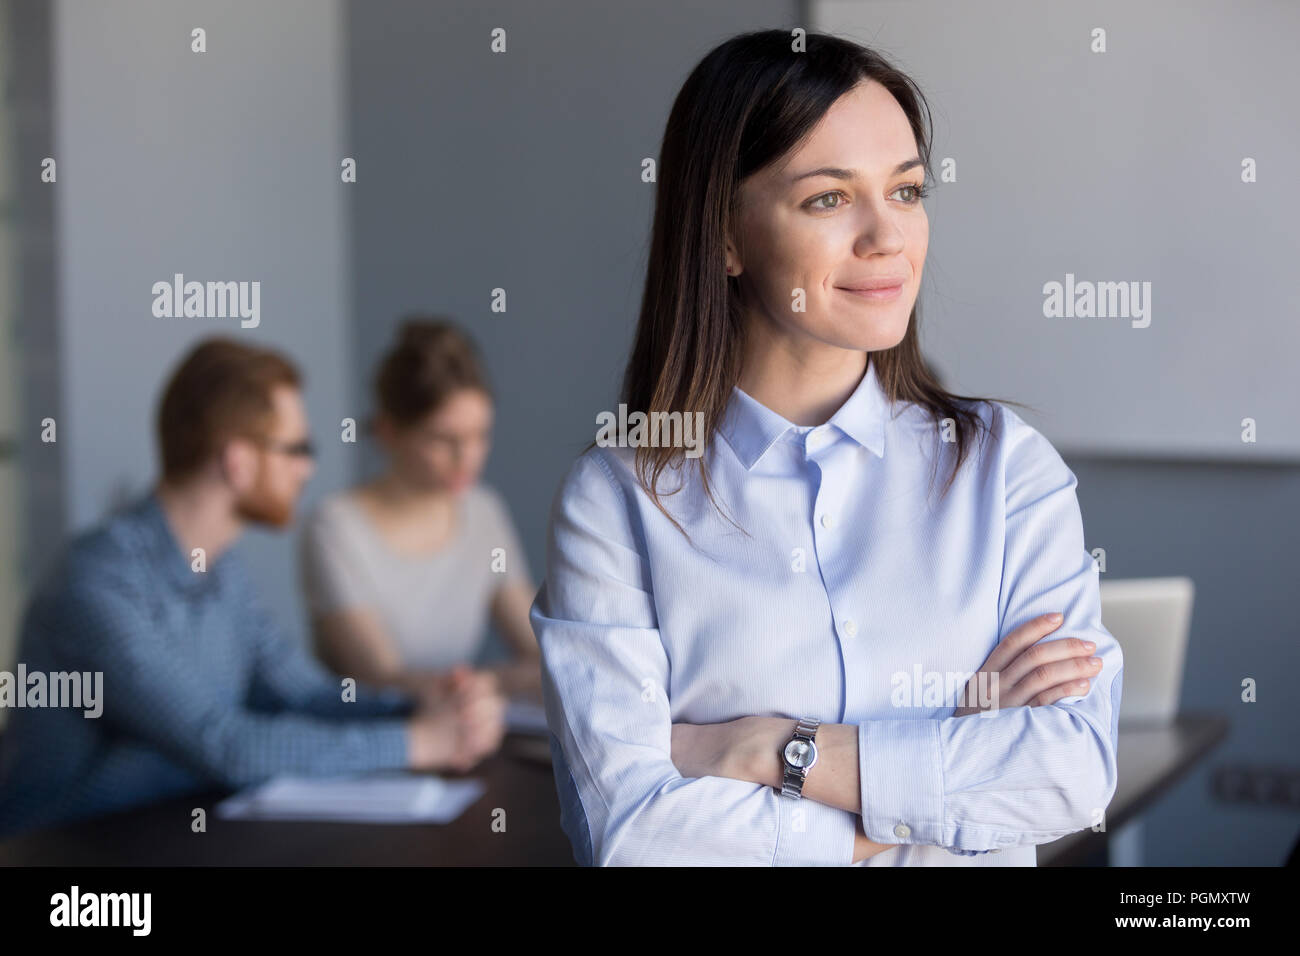 Smiling businesswoman looking from window dreaming of future suc Stock Photo